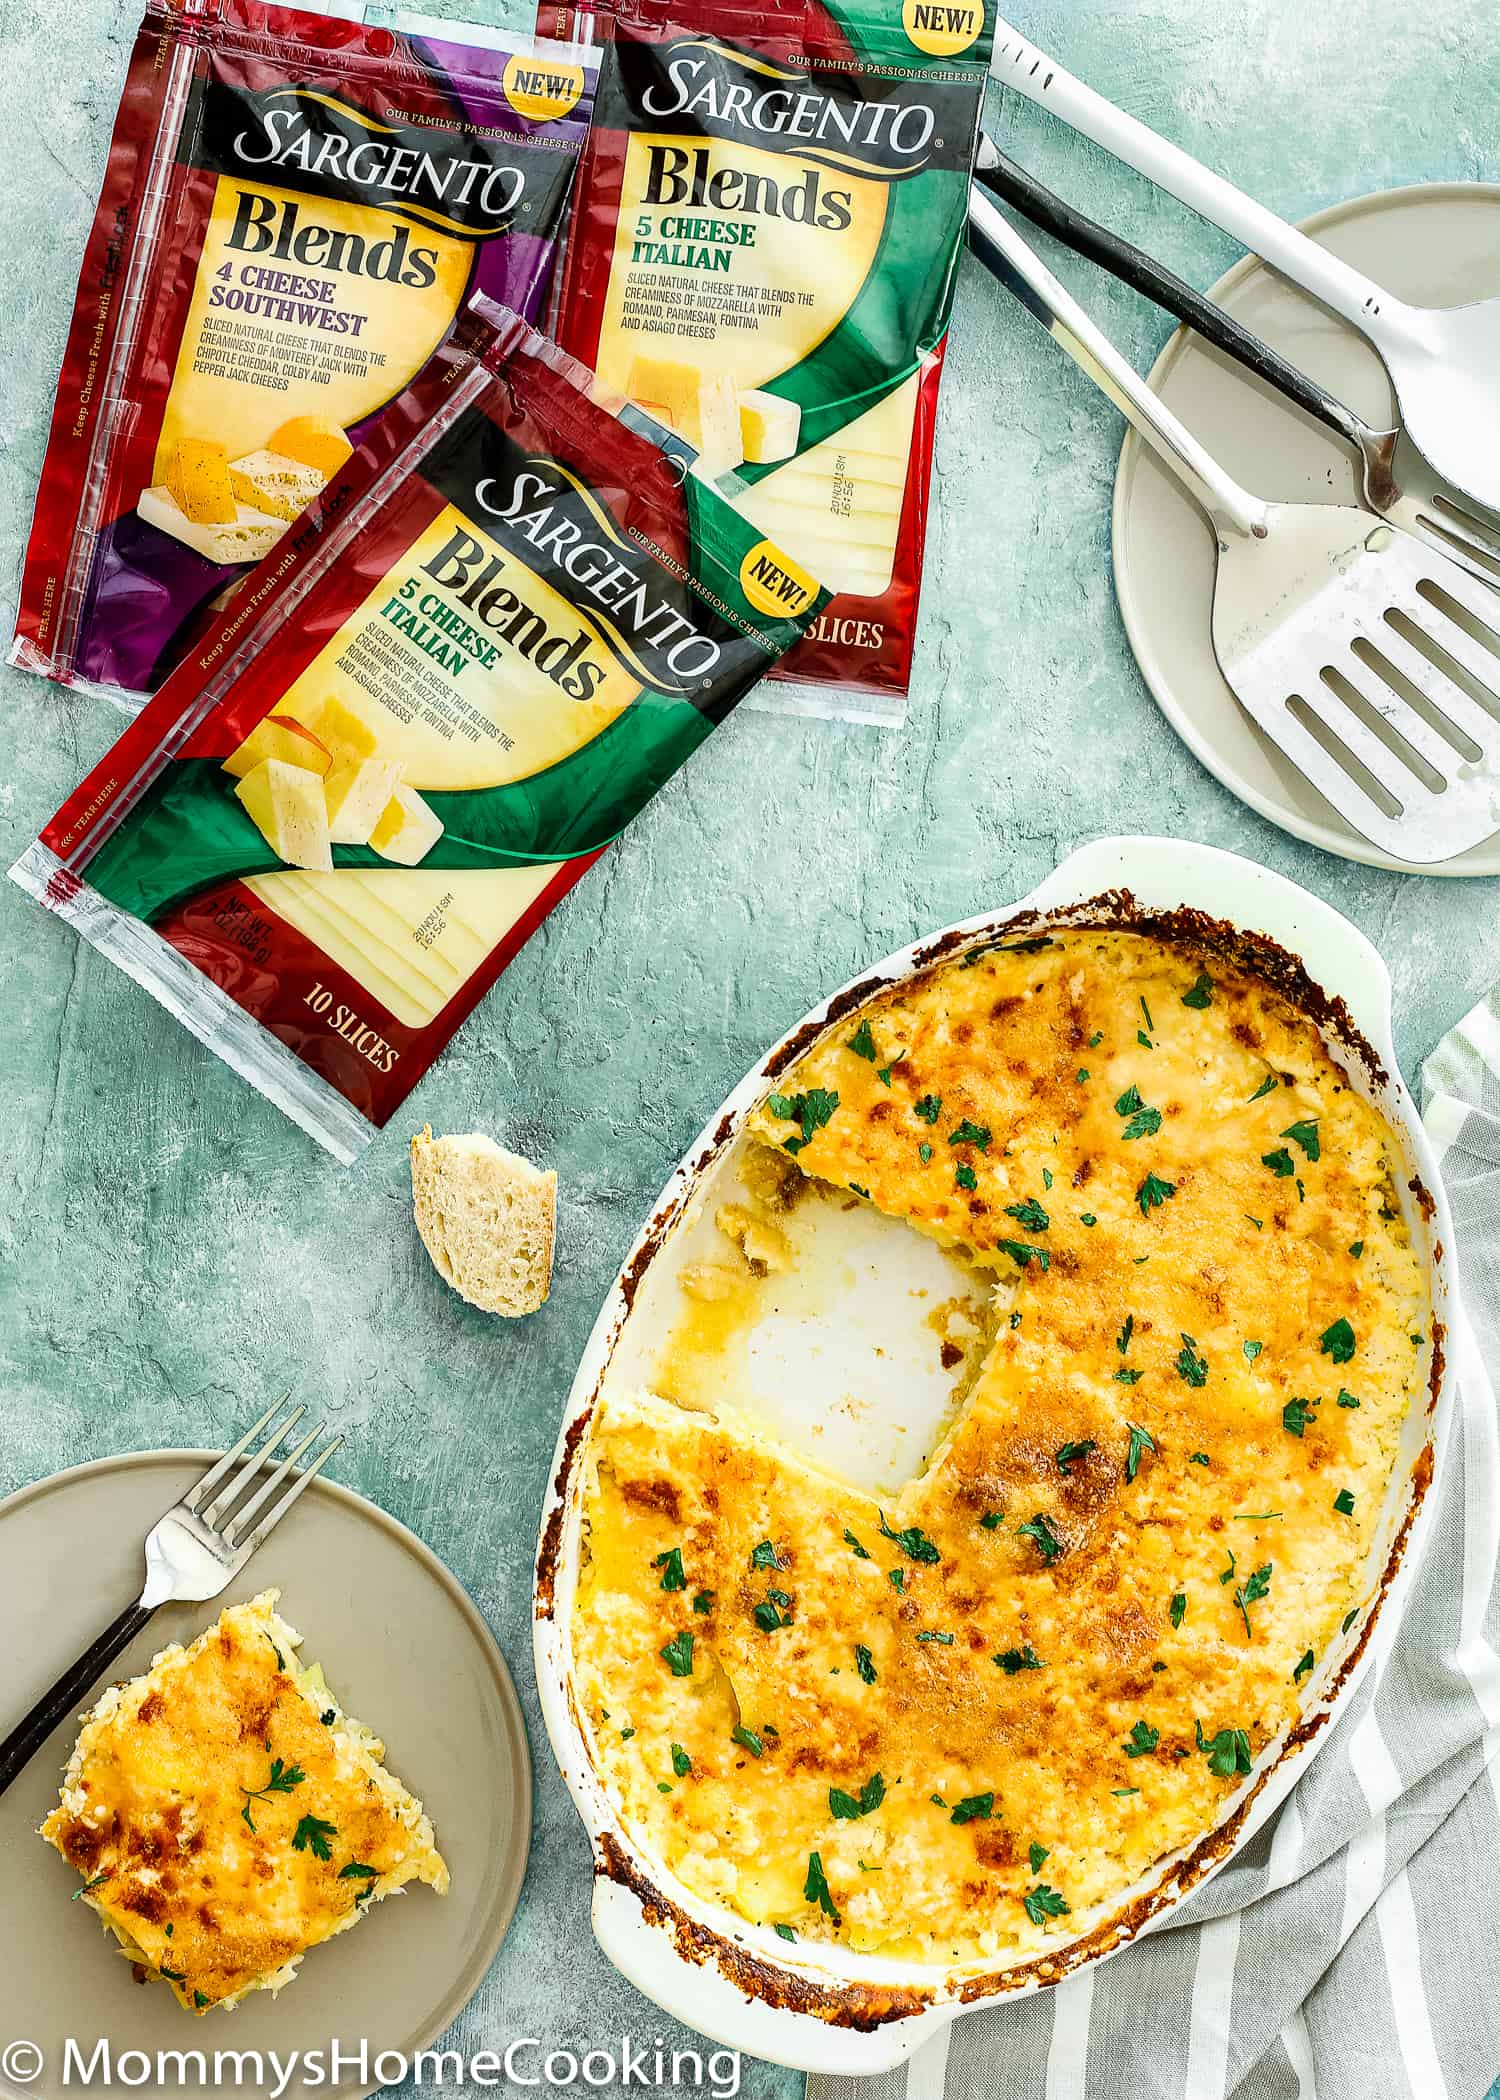 This Cheesy Potatoes and Cod Casserole recipe is cheesy, creamy, and easy to make! Loaded Potato, cheese and cod, this dish is a whole dinner in one! For sure a go-to dinner for any day of the week. https://mommyshomecooking.com